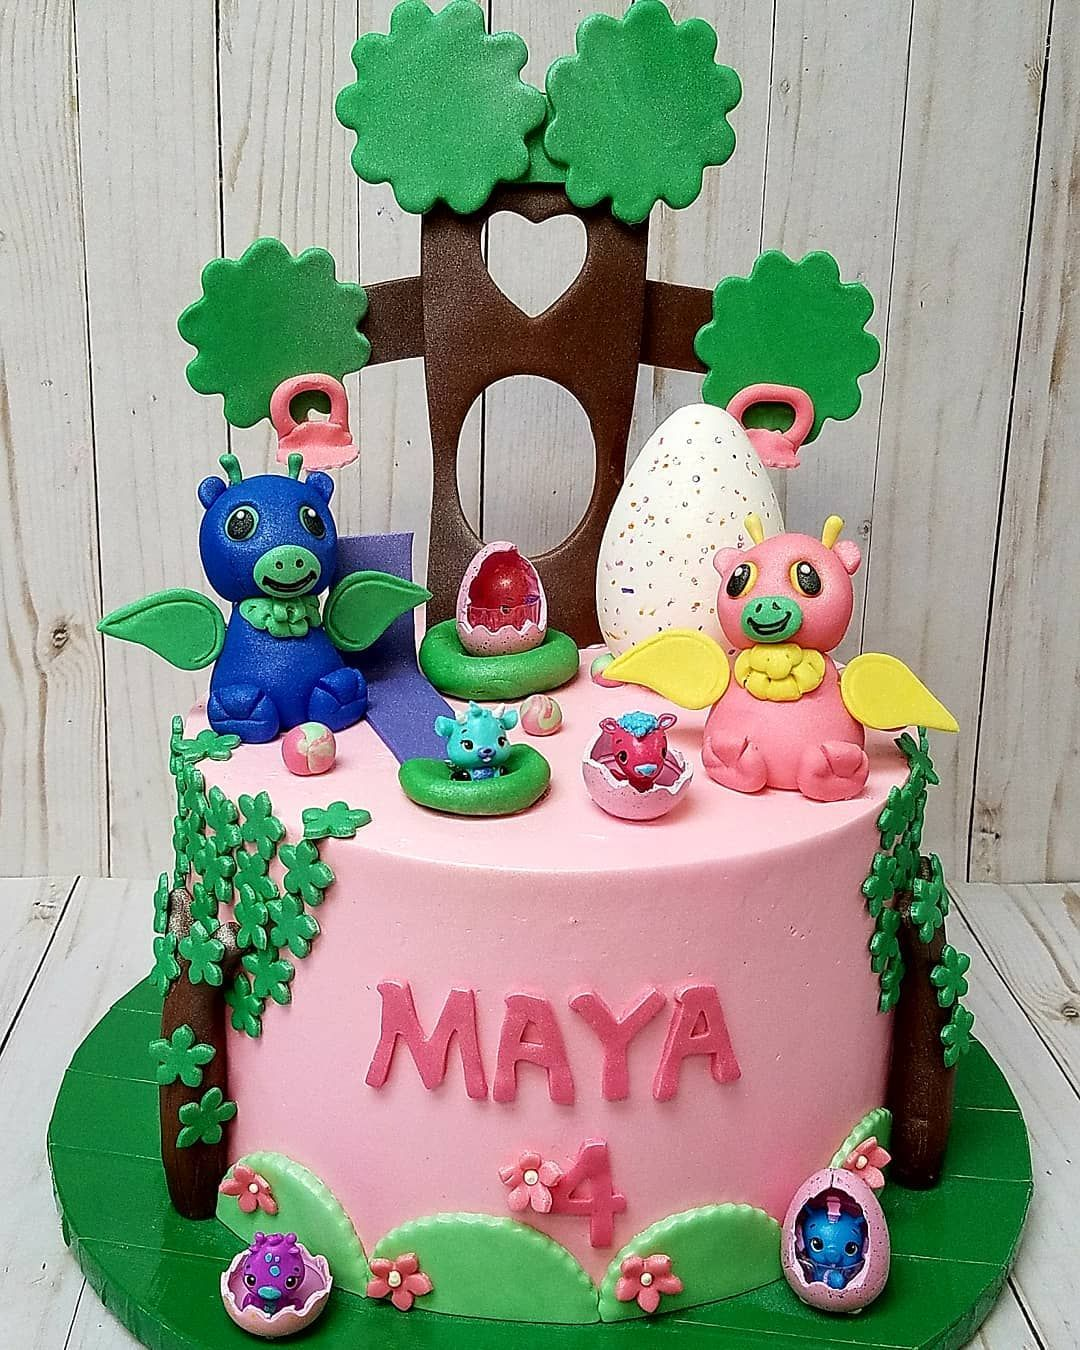 Hatchimal Cake For Maya Buttercream With Fondant Details Happy Birthday Pastrybagcakeco Ctcustomcakes Birthdaycakes Hatchimals